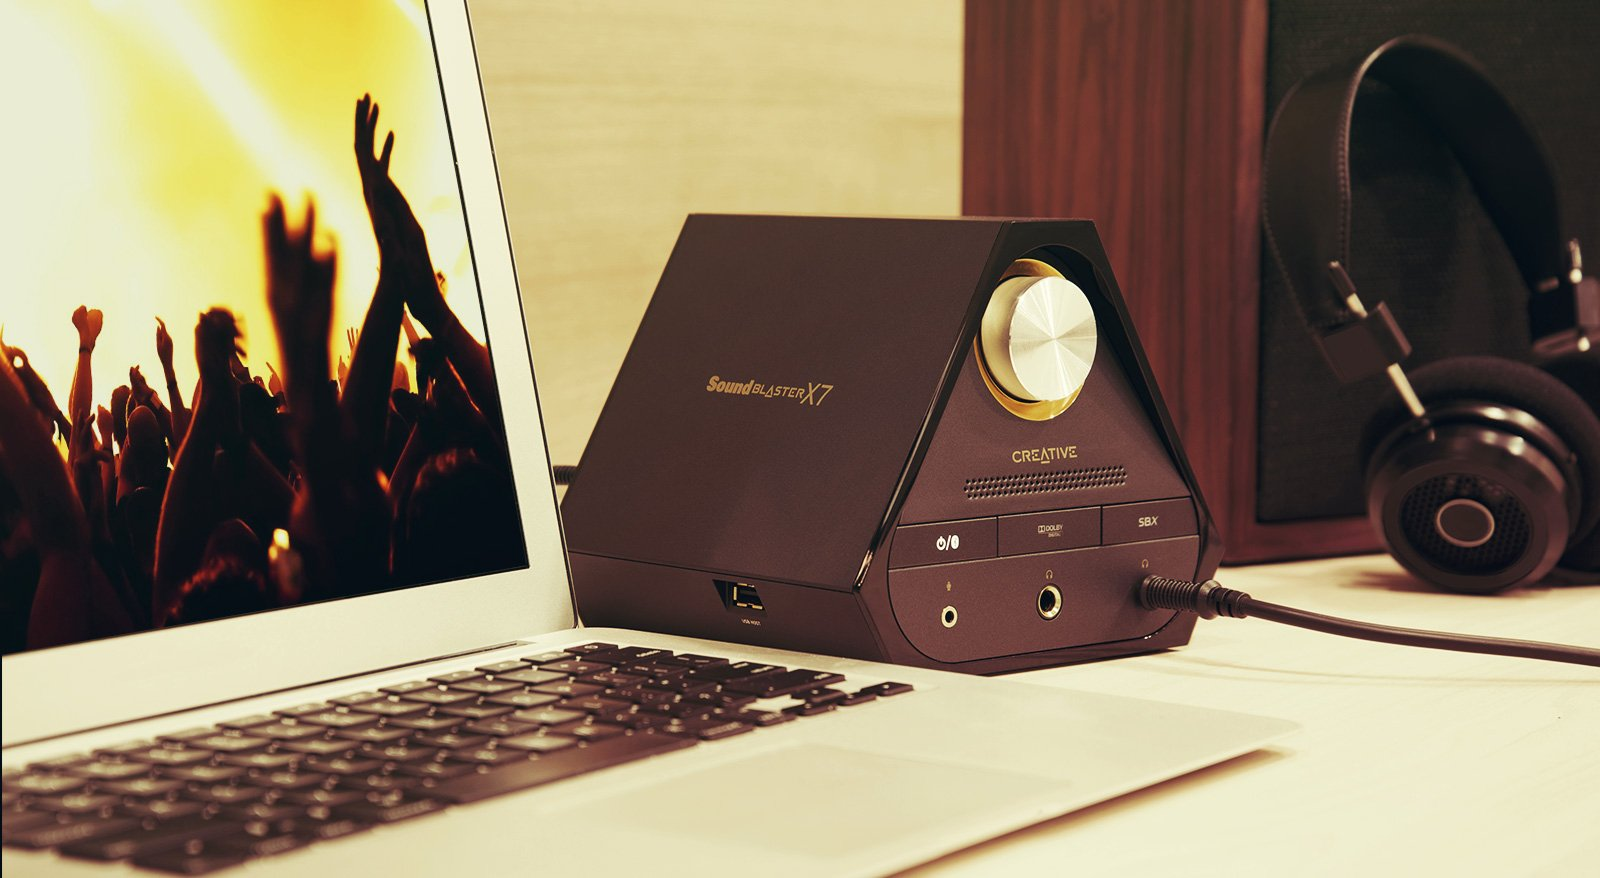 Creative Sound Blaster X7 High-Resolution USB DAC 600 ohm Headphone Amplifier with Bluetooth Connectivity by Creative (Image #5)